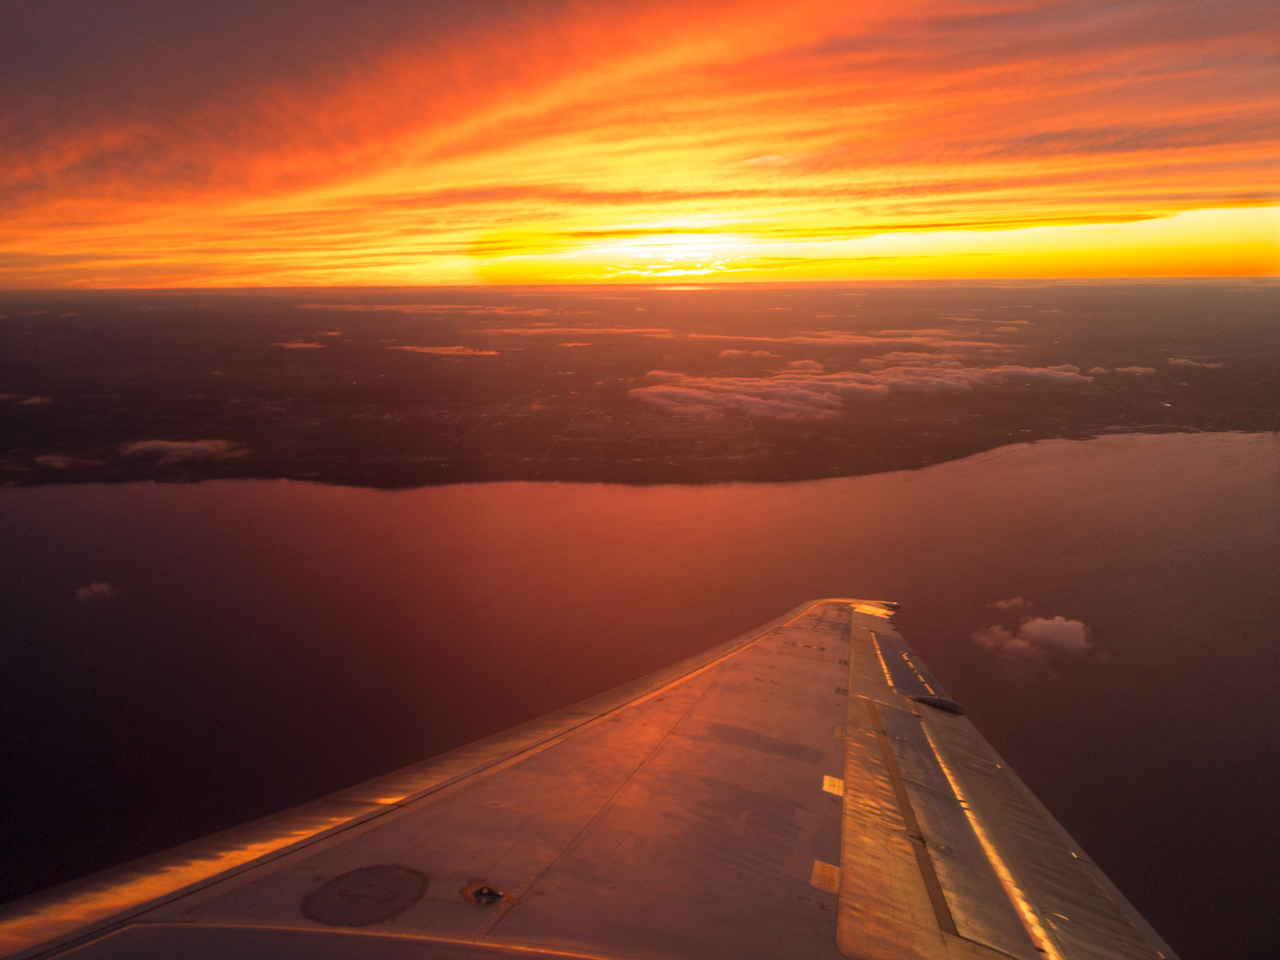 Sunset over Lake Michigan as seen from an airplane